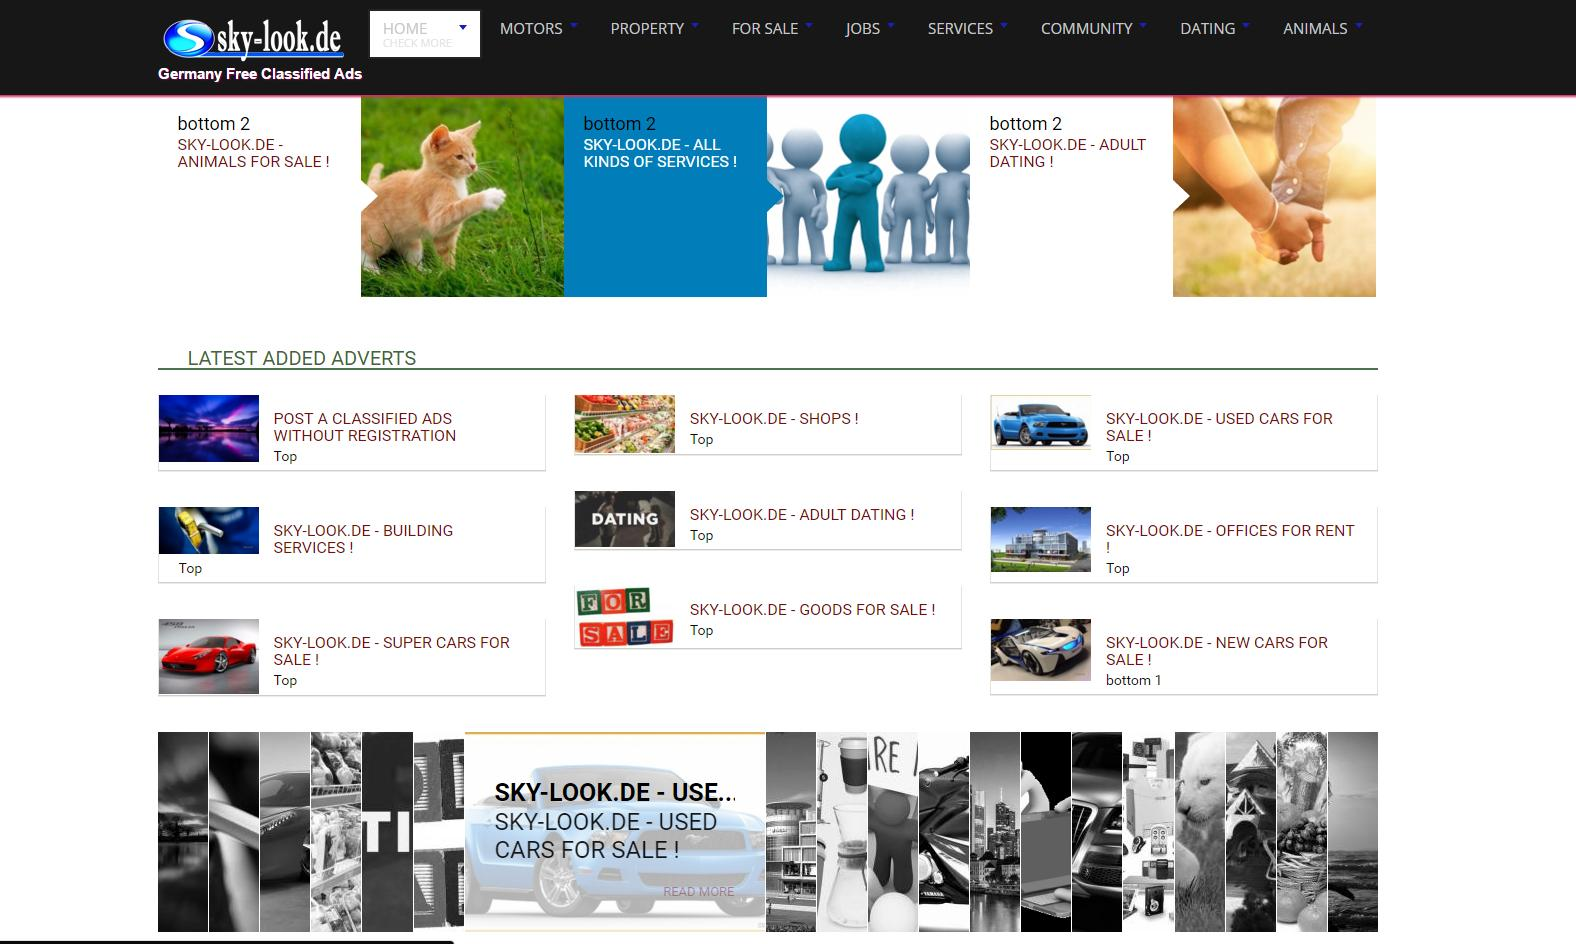 free classified ads on buy and sell in germany